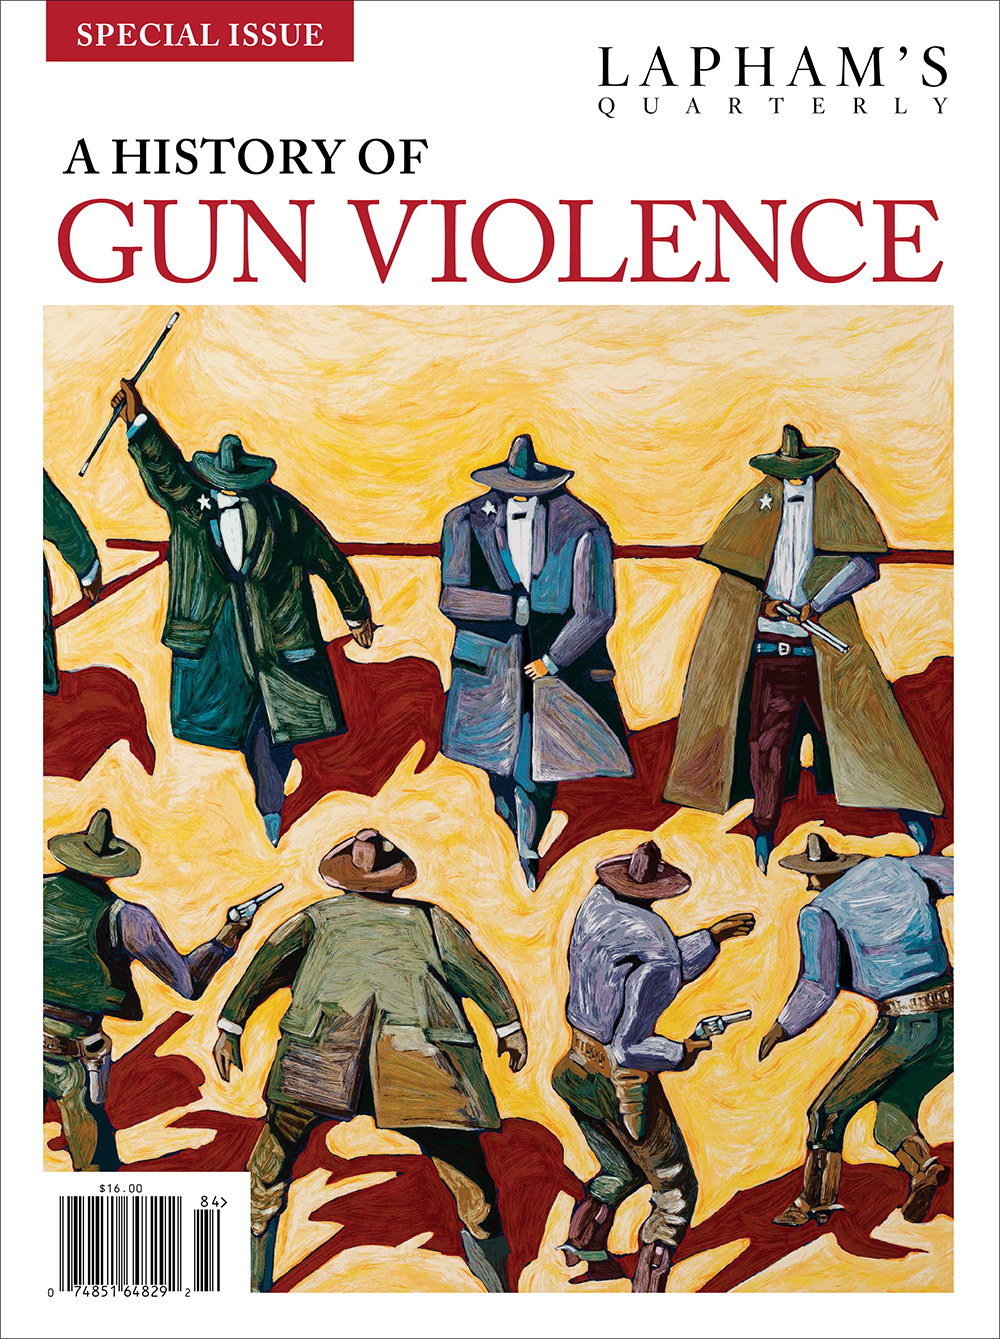 A History of Gun Violence, a Lapham's Quarterly special issue.